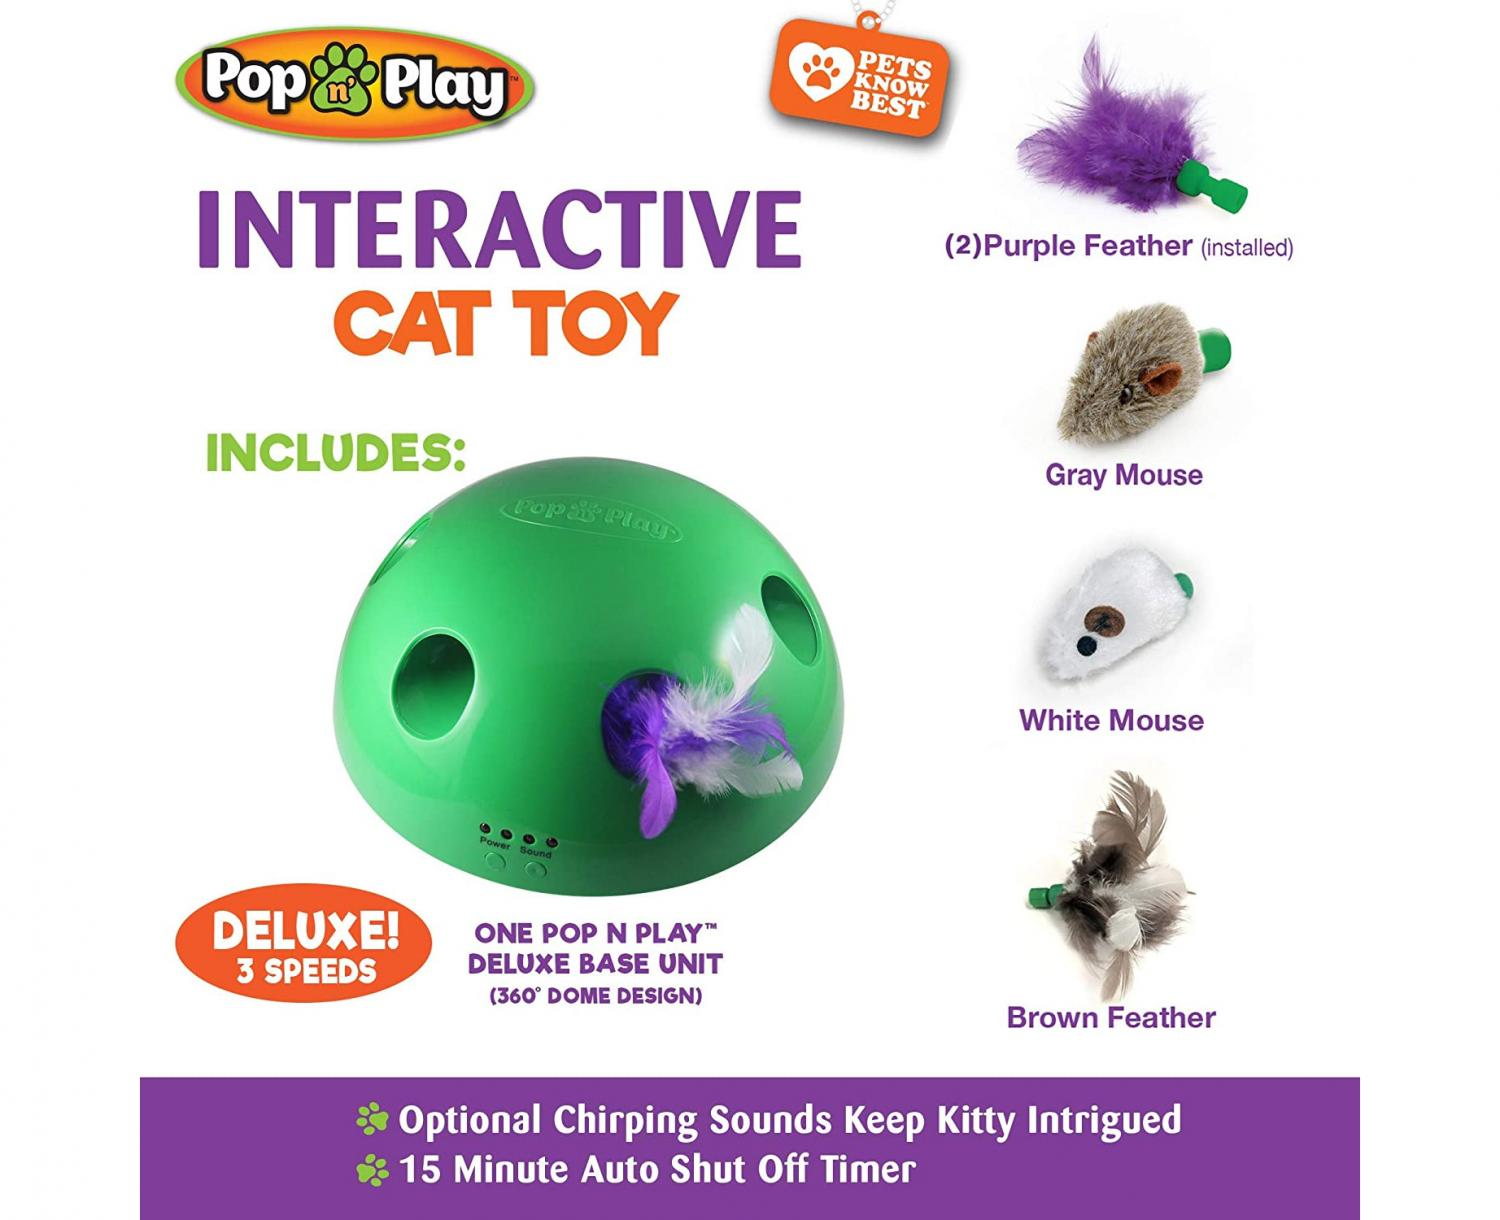 Pop N' Play Cat Teaser - Automatic rotating cat toy dome